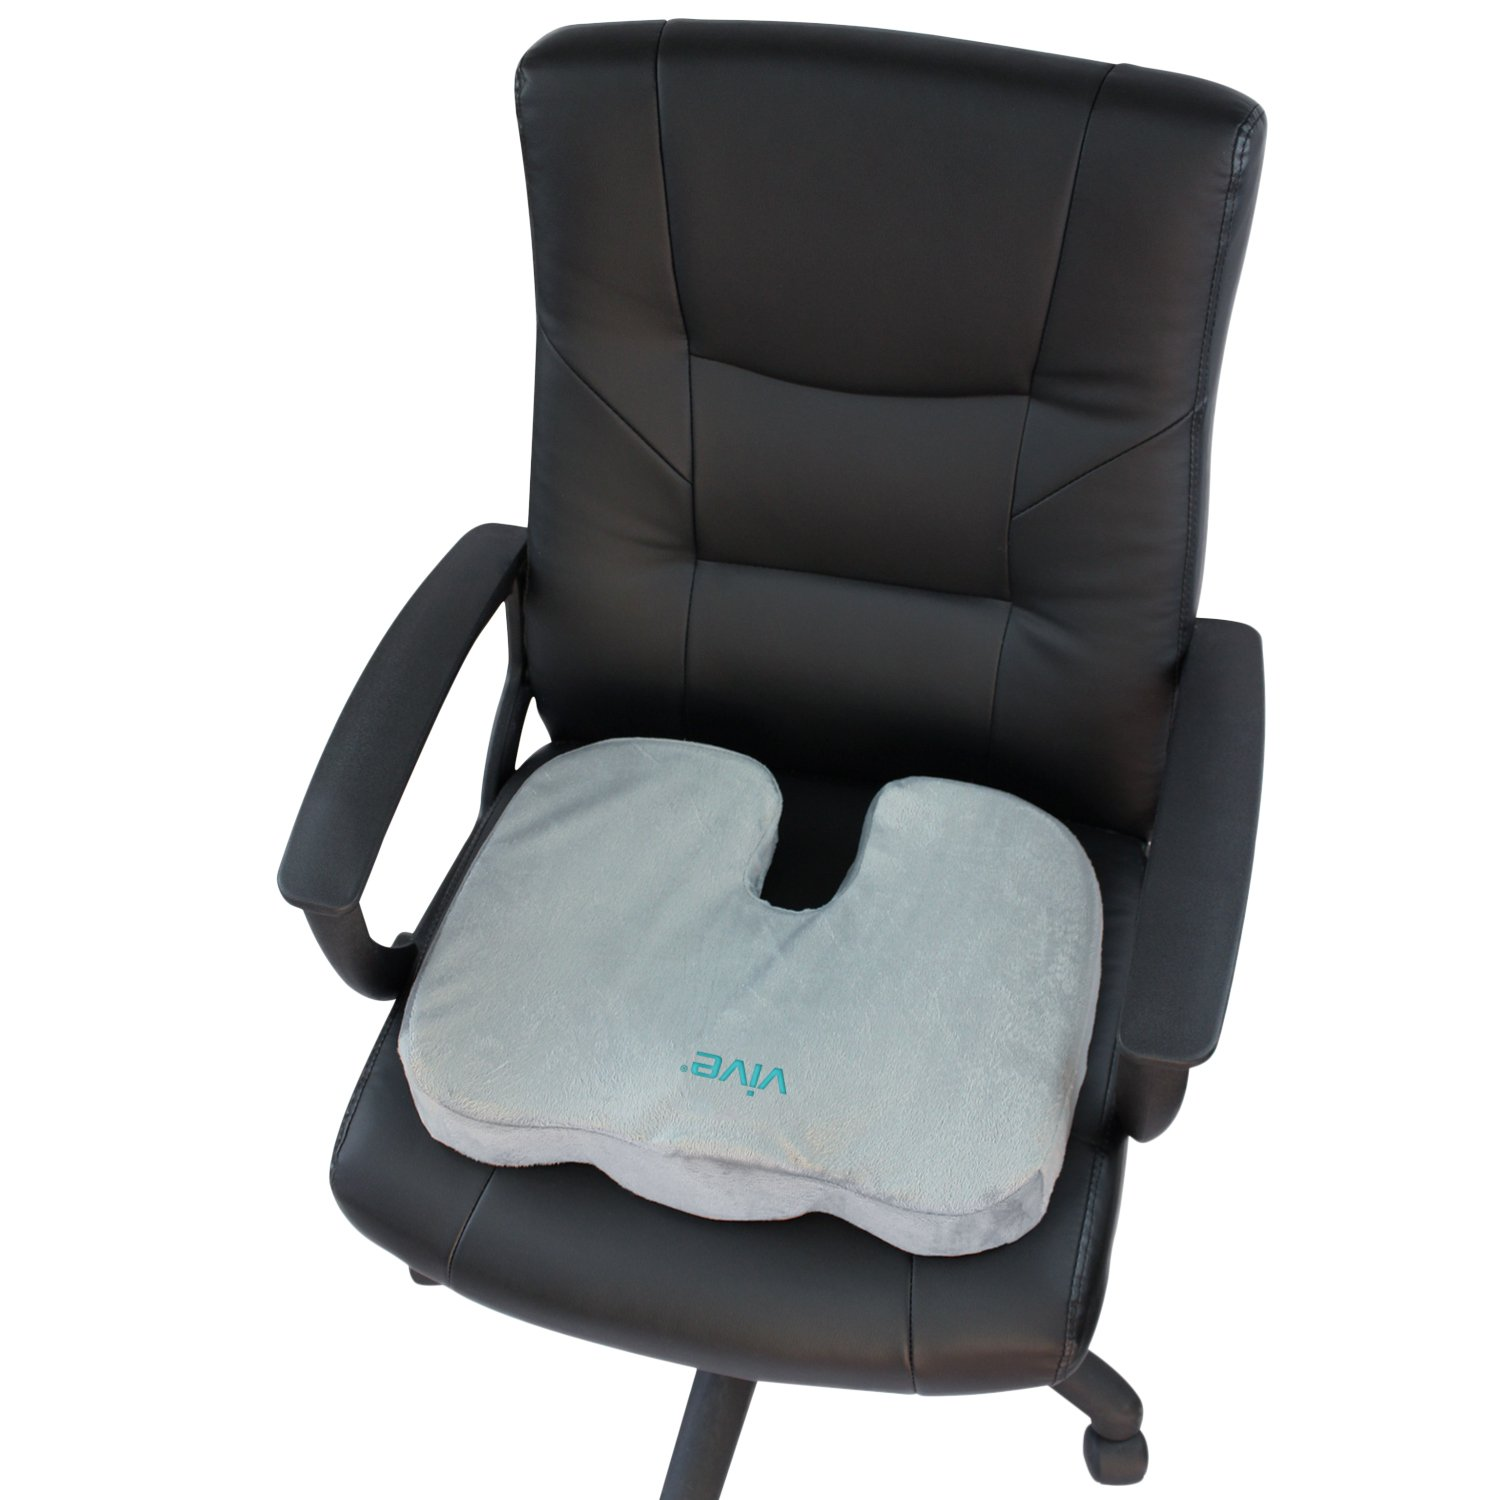 Amazon Tailbone Cushion by Vive Foam Seat for Coccyx